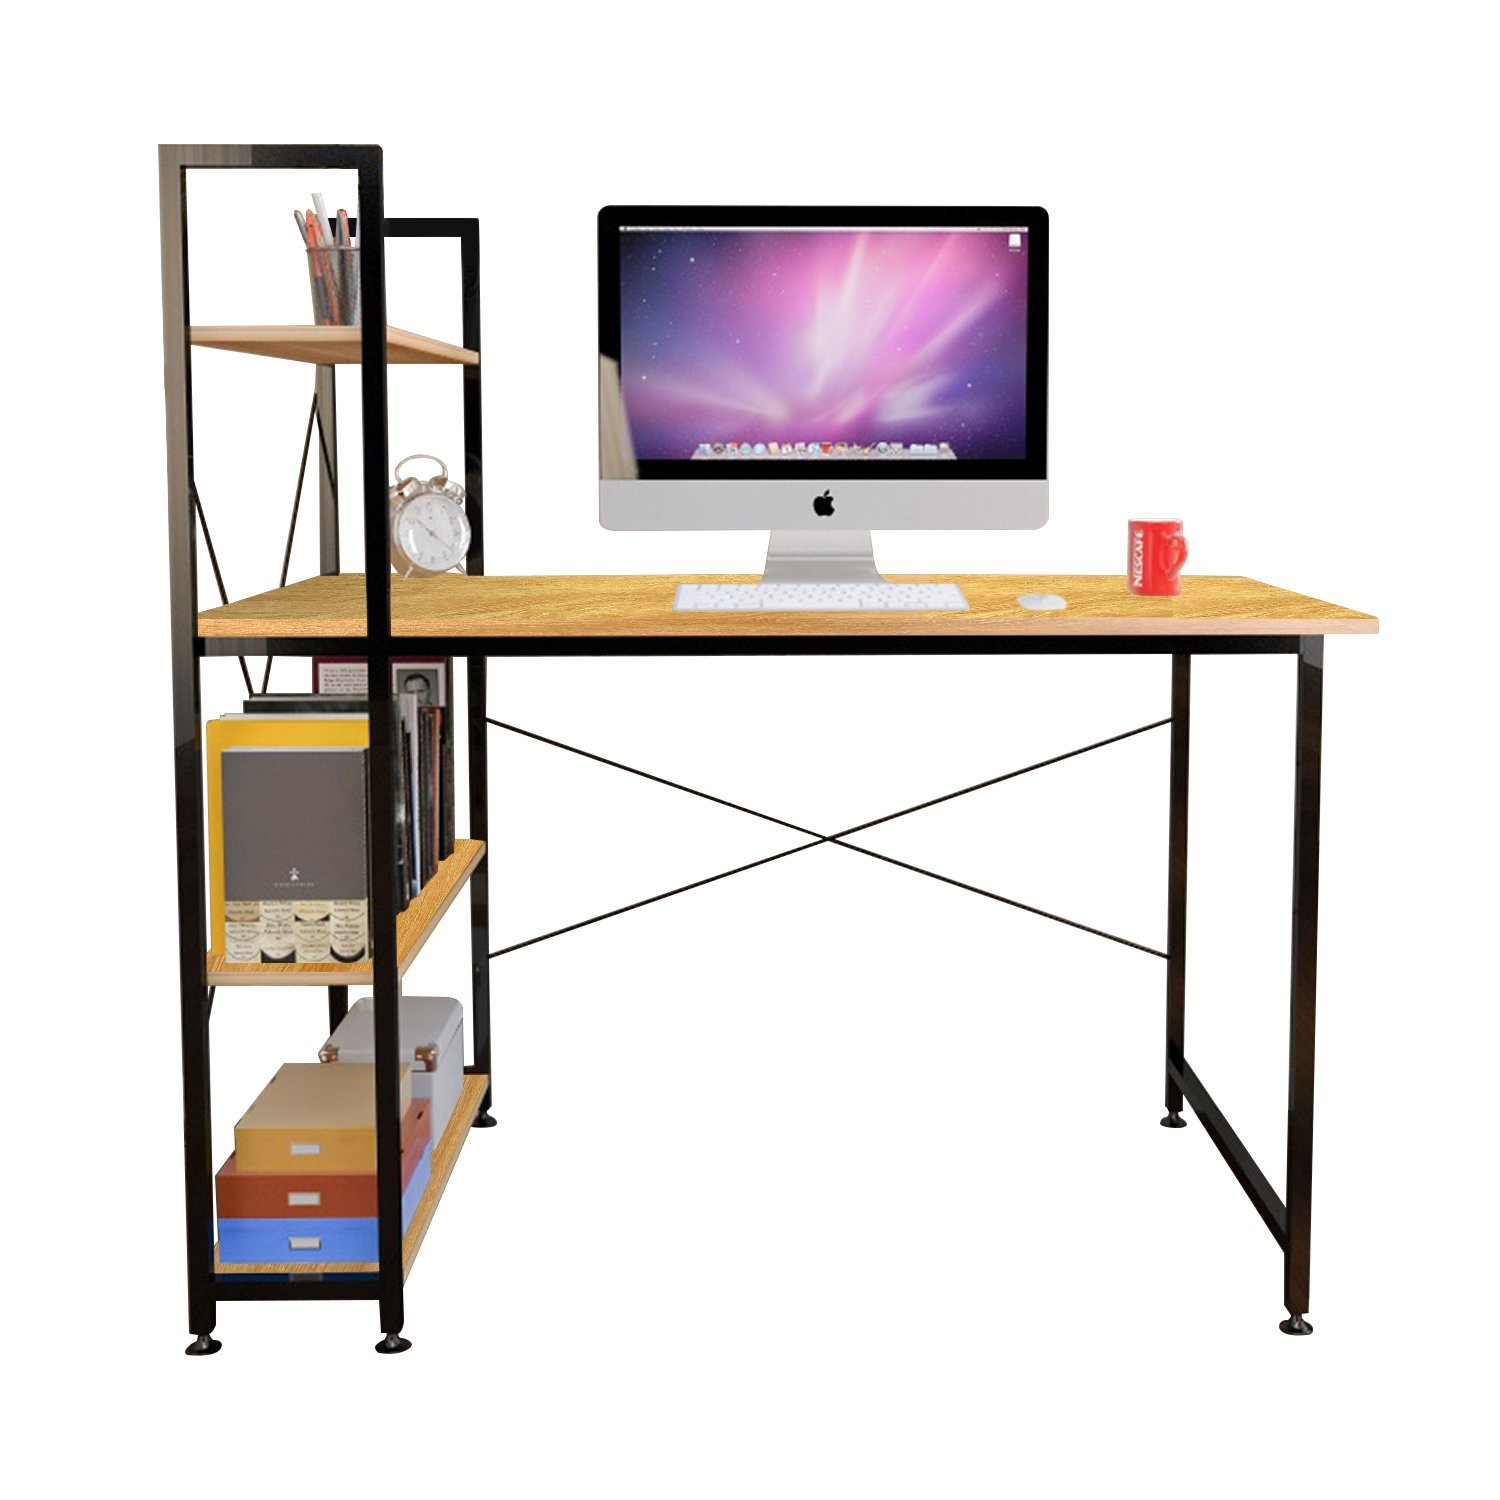 Jerry & Maggie - Computer Desk Lap Desk Table With 4 Tier Steel & Wooden Shelf Rack Stand Desk for Living room Bedroom Office Personal Work Space - Wood Tone